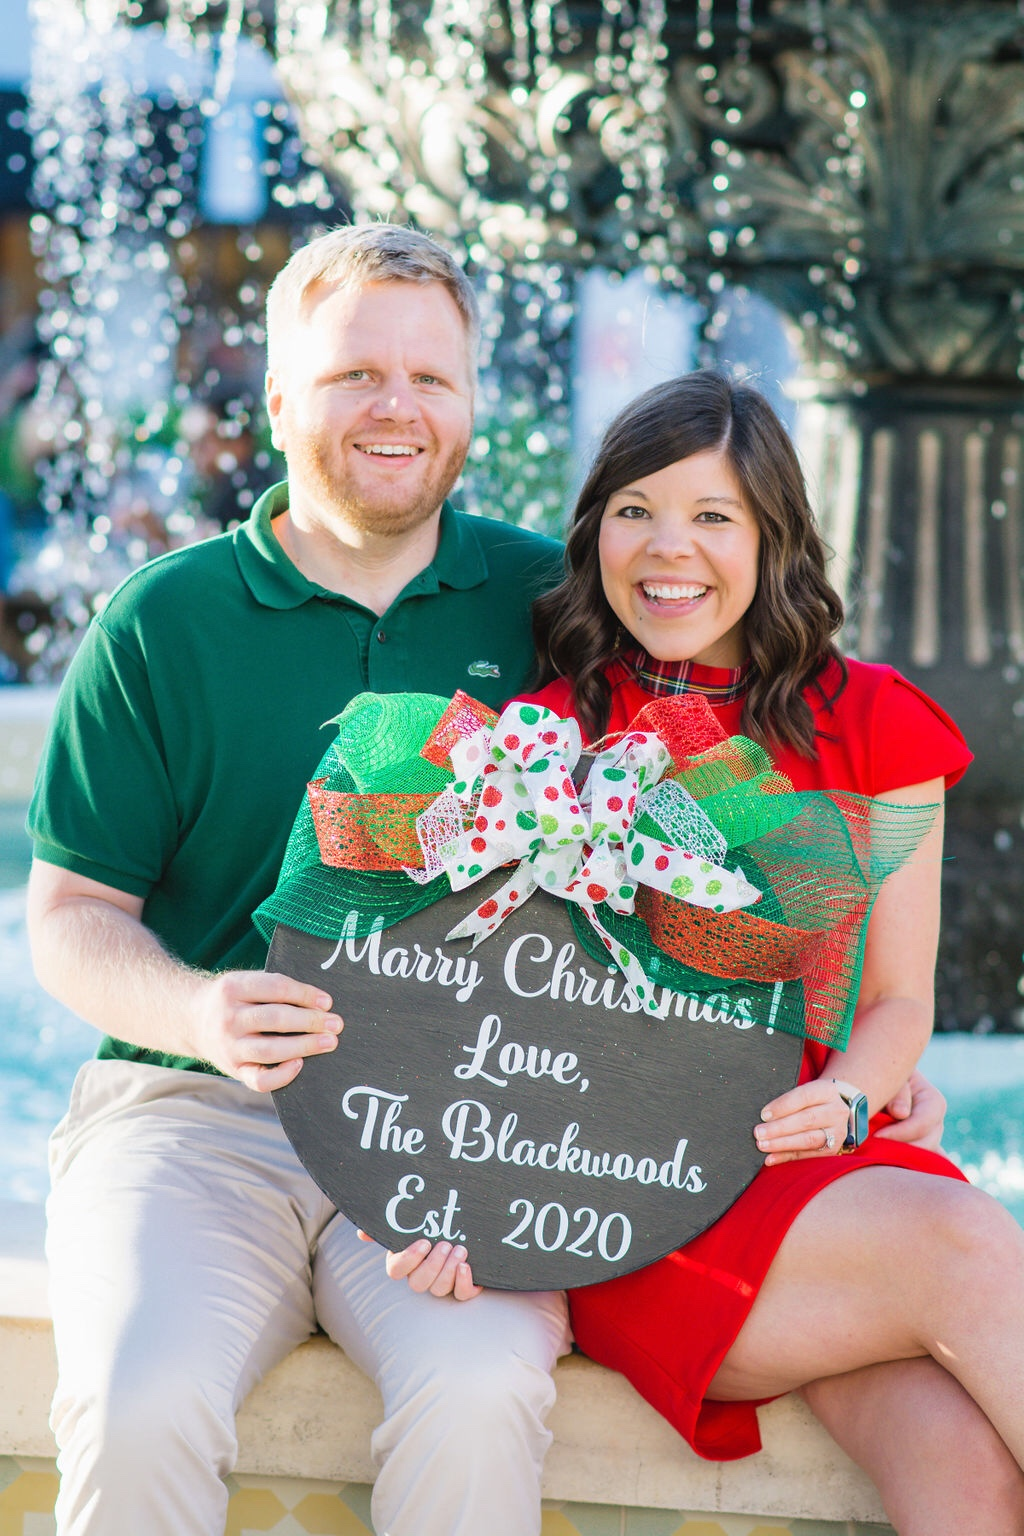 Merry Christmas! (+ Our Holiday Engagement Photos)